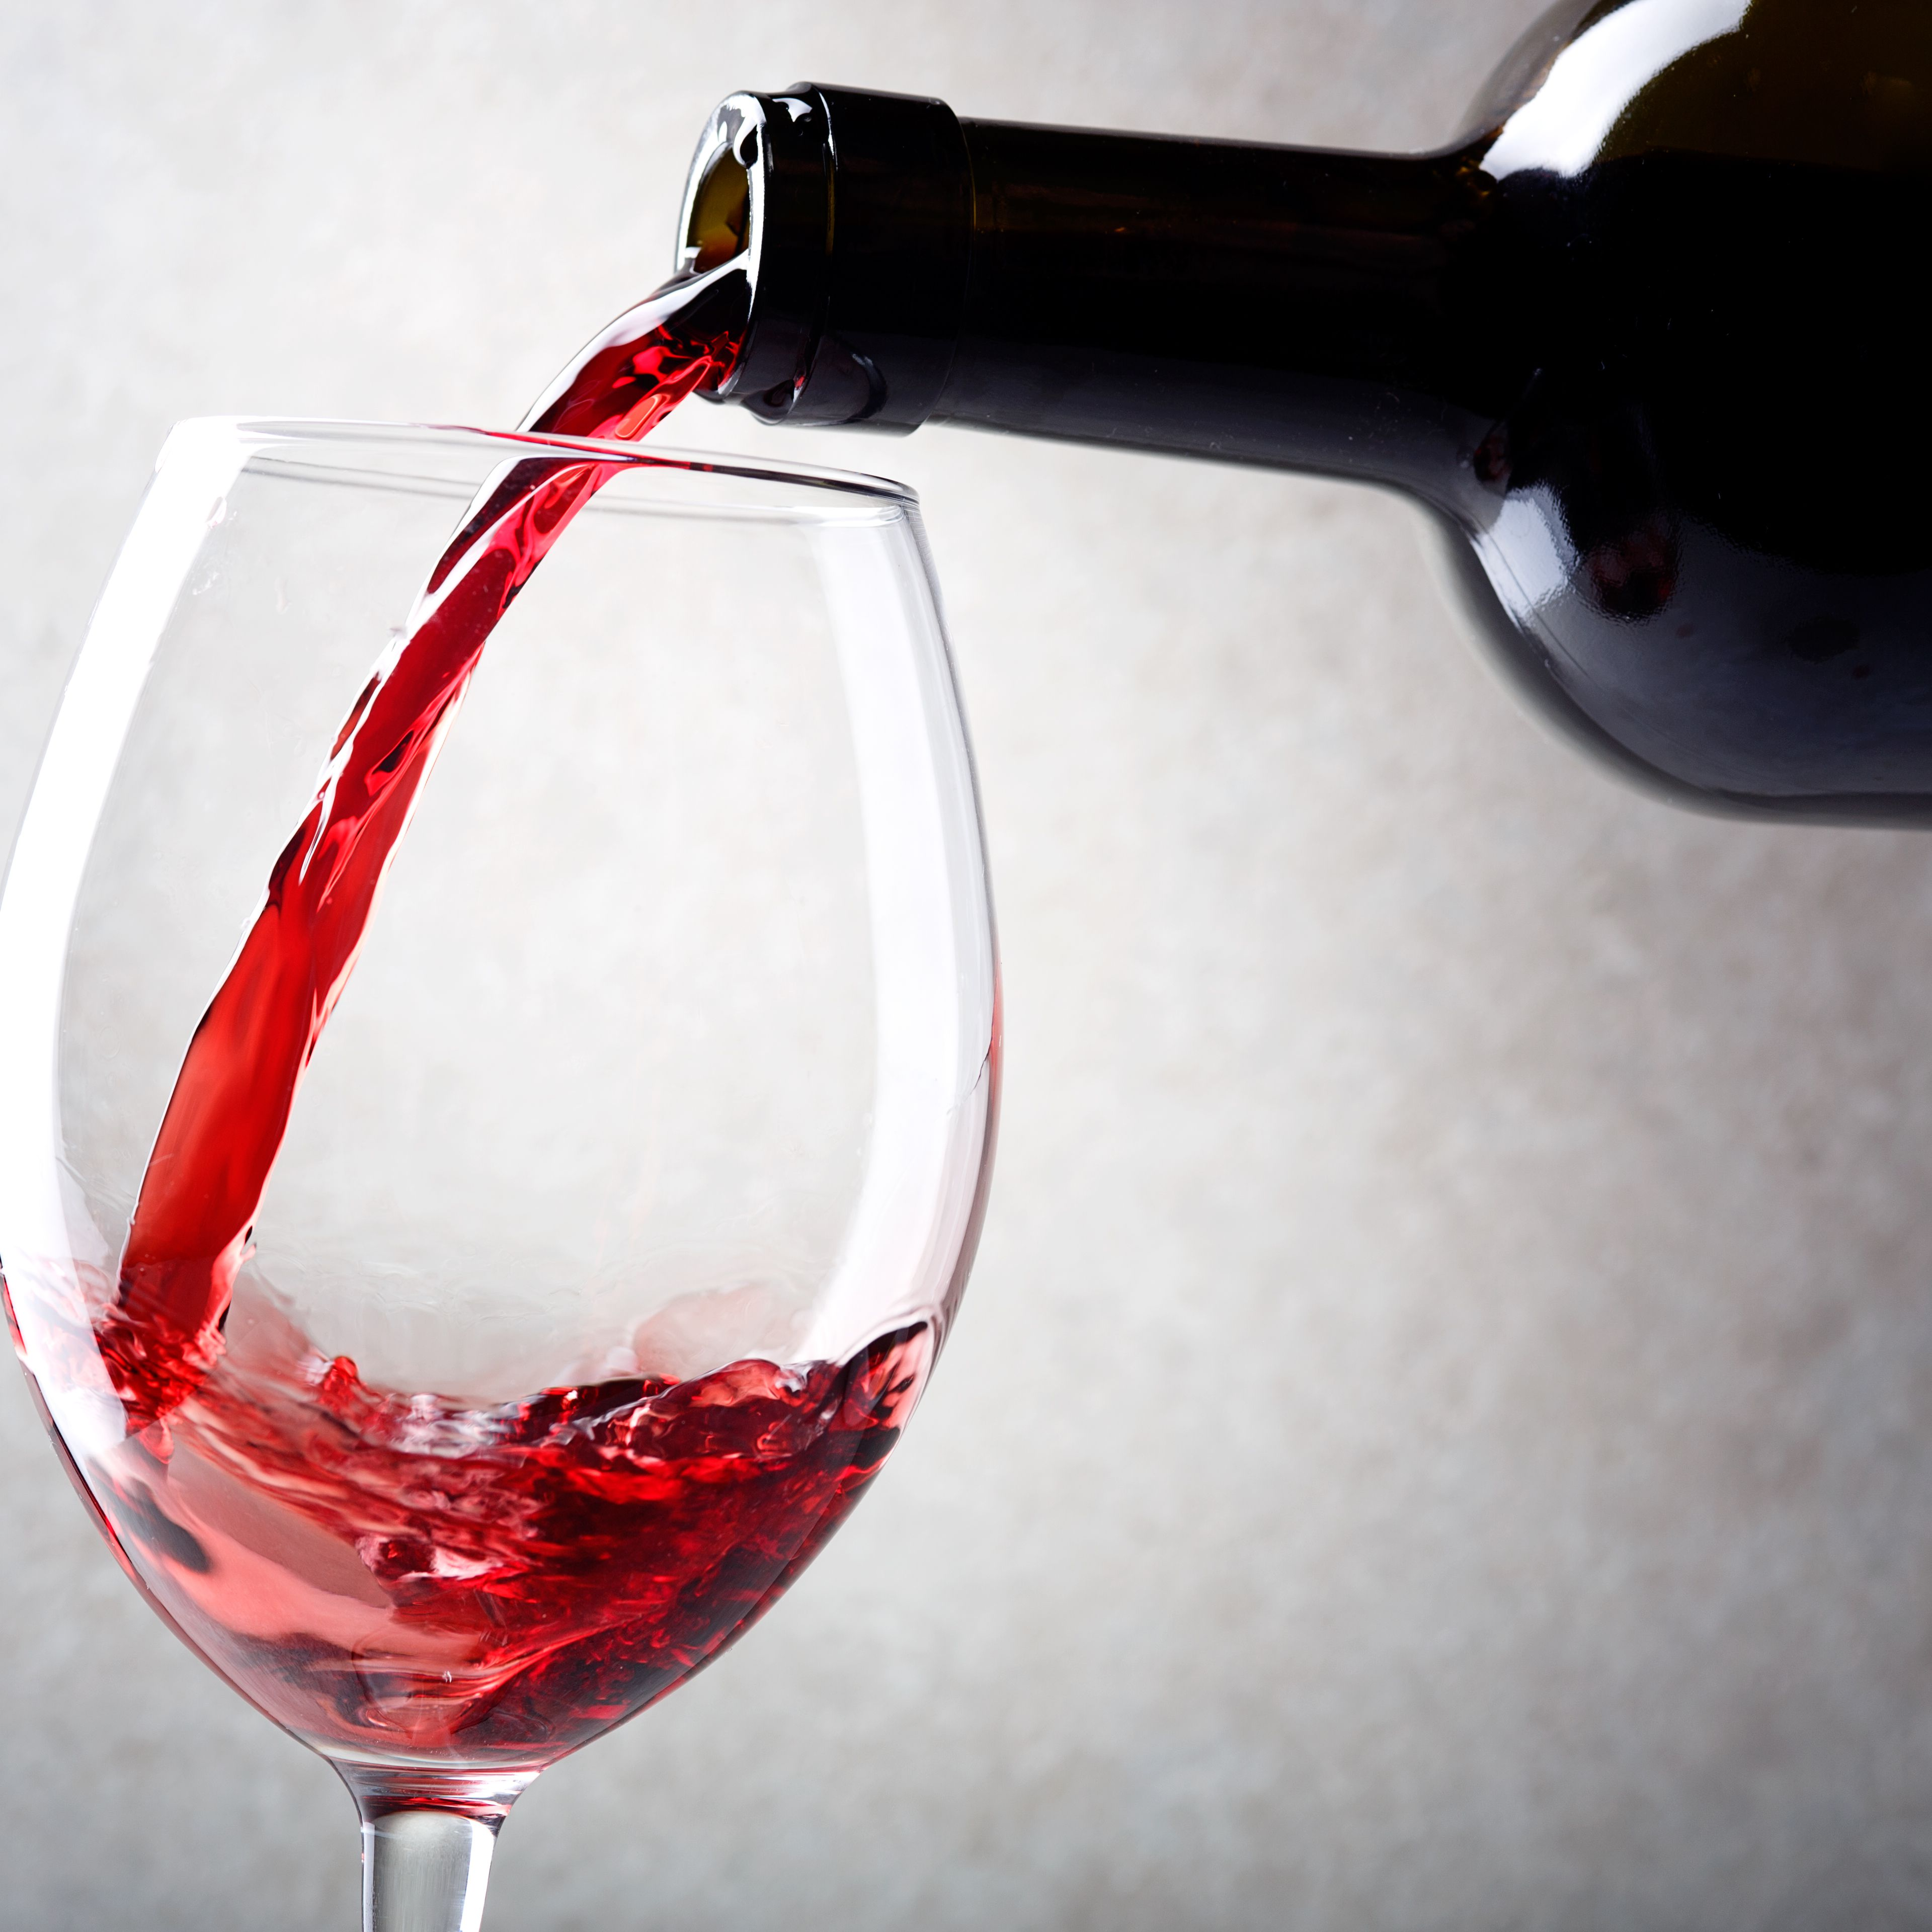 Discover All the Different Types of Red Wine